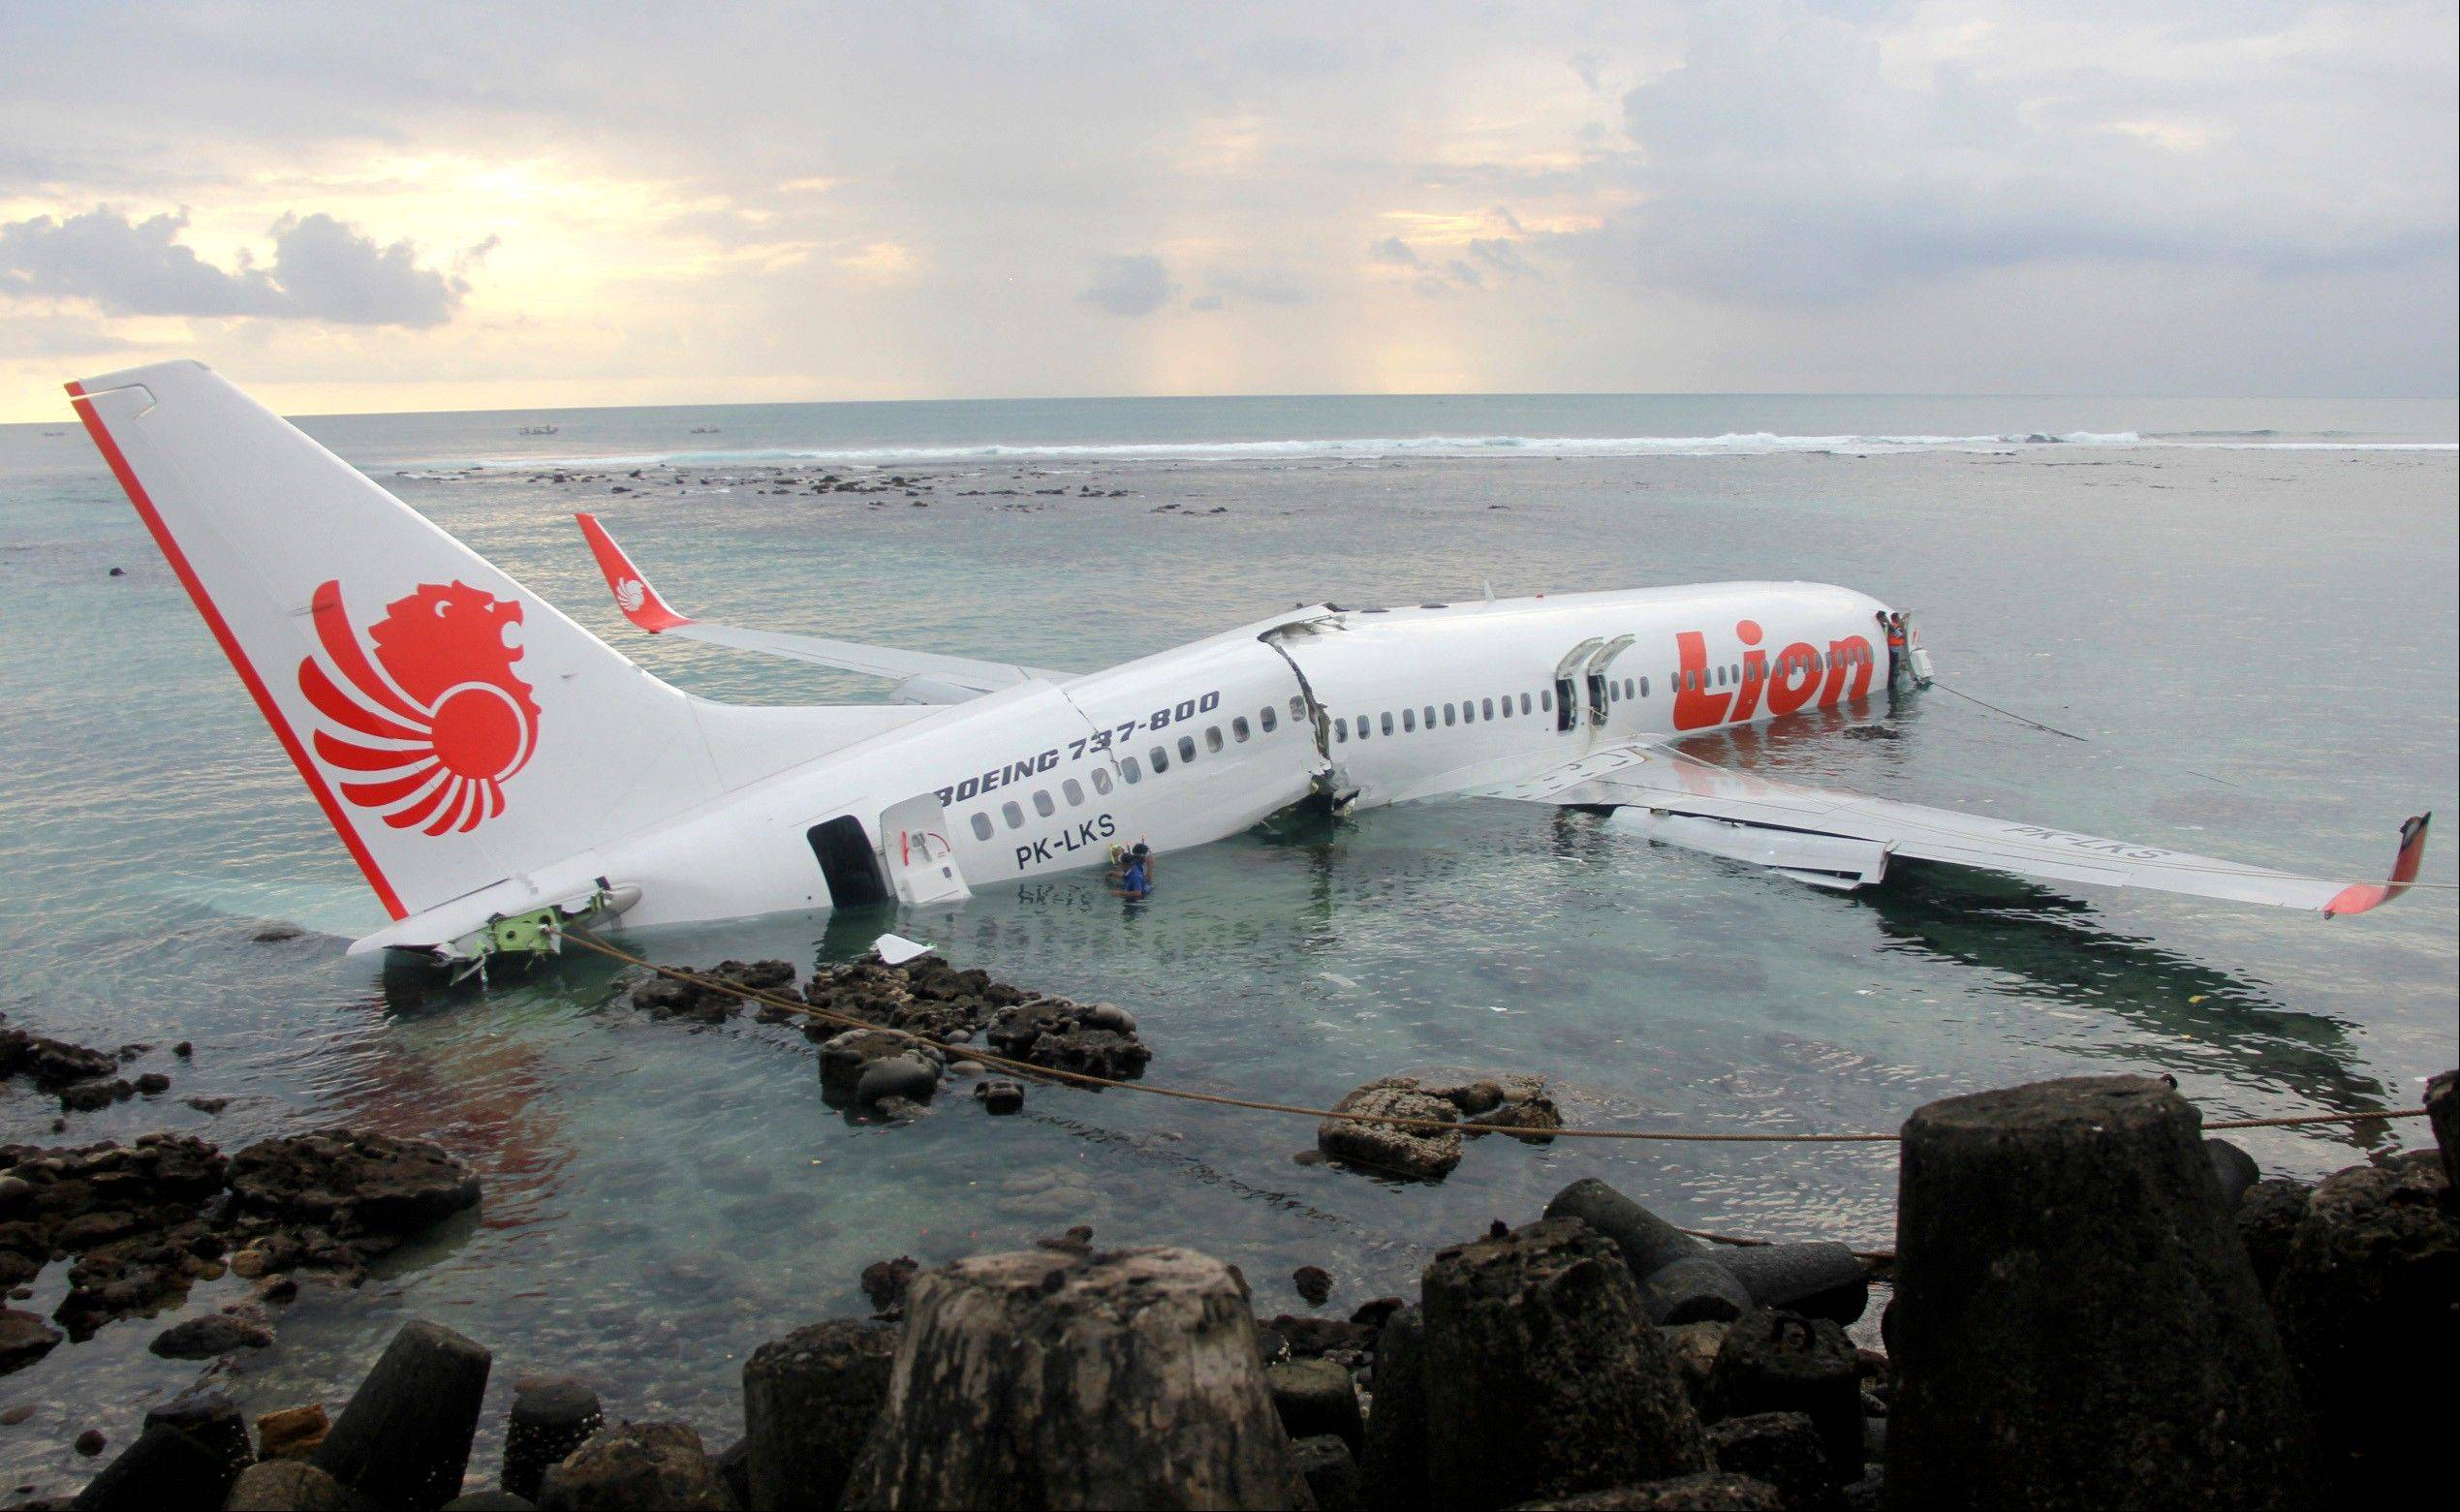 The wreckage of a crashed Lion Air plane in Bali, Indonesia, remains stuck in shallow water Mondayand must be cut into pieces for removal. The plane carrying more than 100 passengers and crew overshot a runway on the Indonesian resort island of Bali on Saturday and crashed into the sea, injuring nearly two dozen people, officials said.